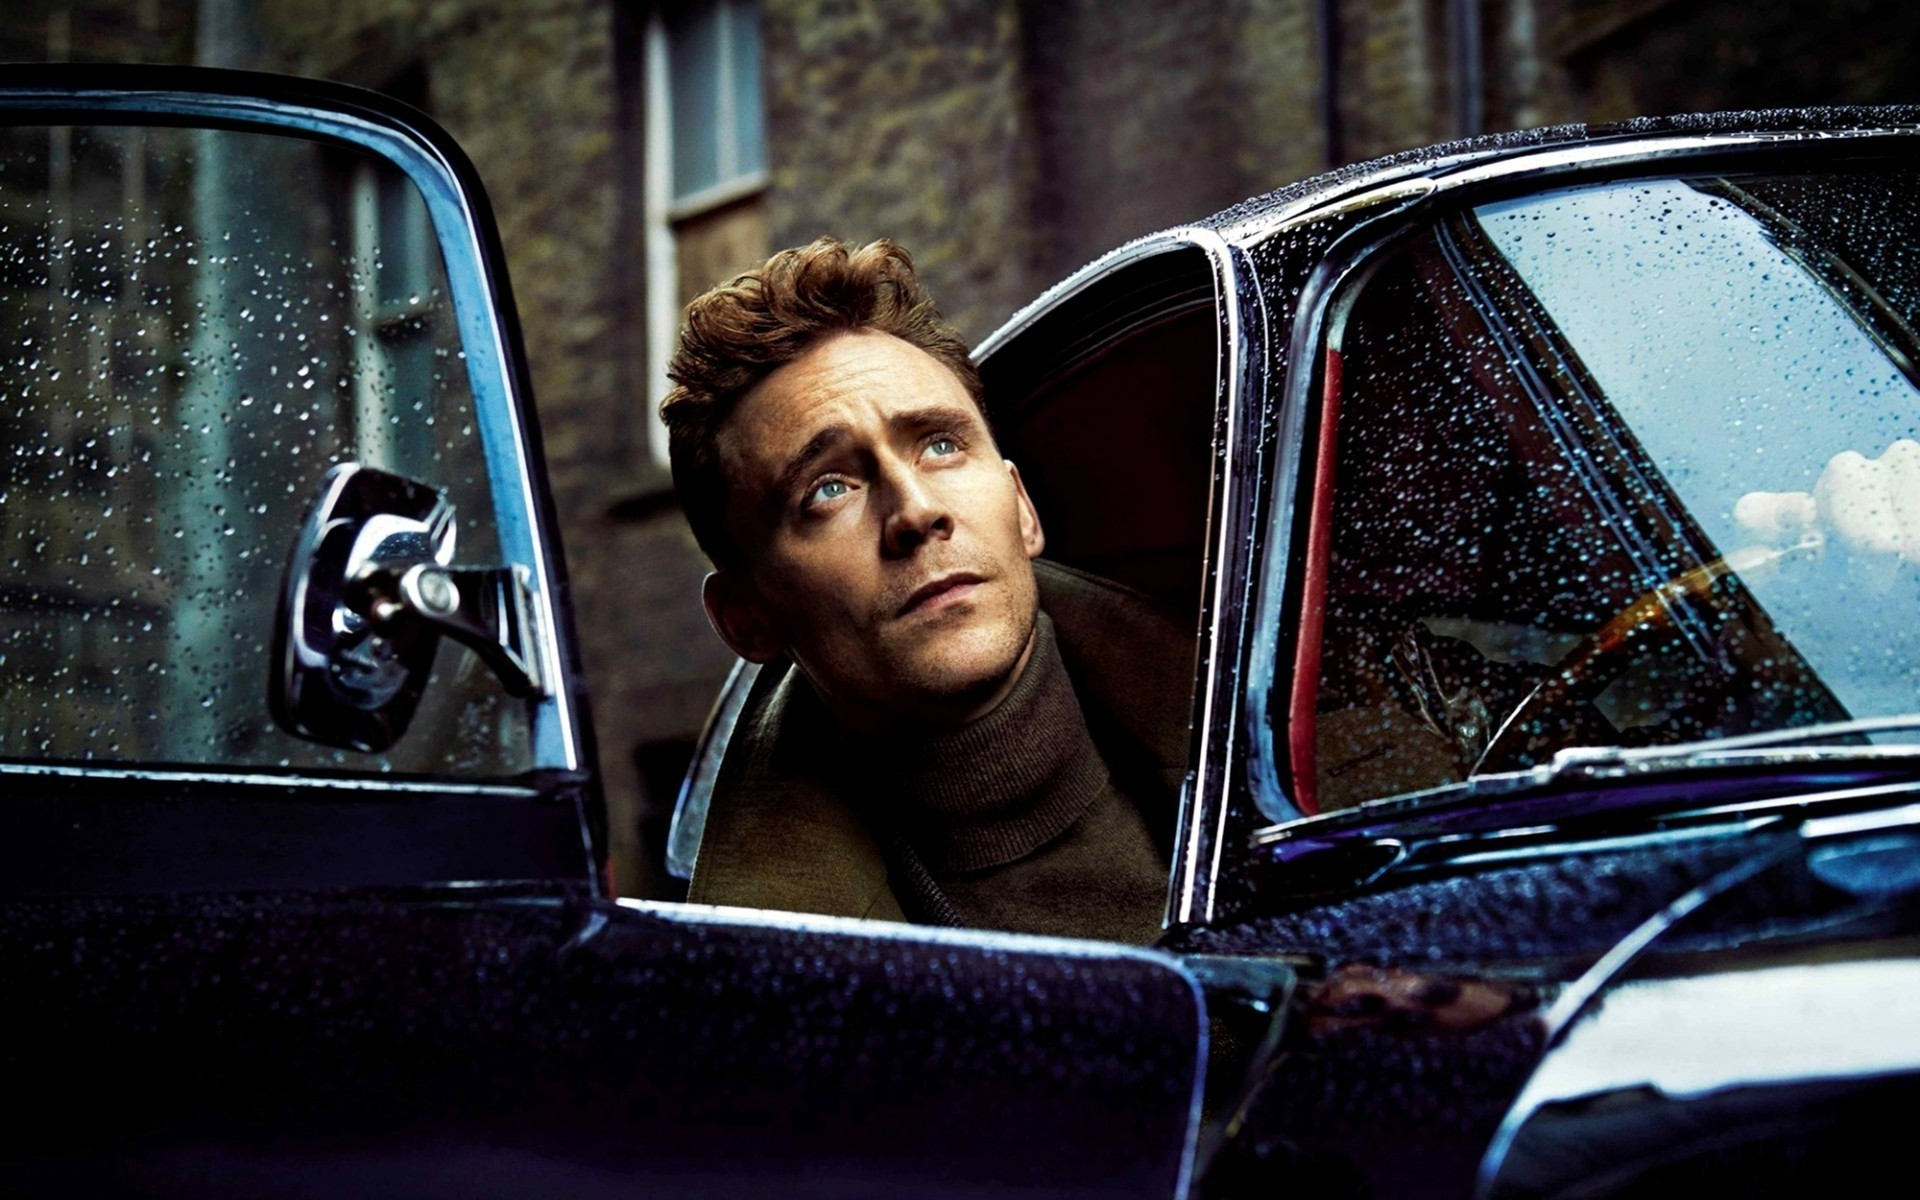 men car vehicle transportation system one adult woman window driver man windshield indoors facial expression portrait tom hiddleston